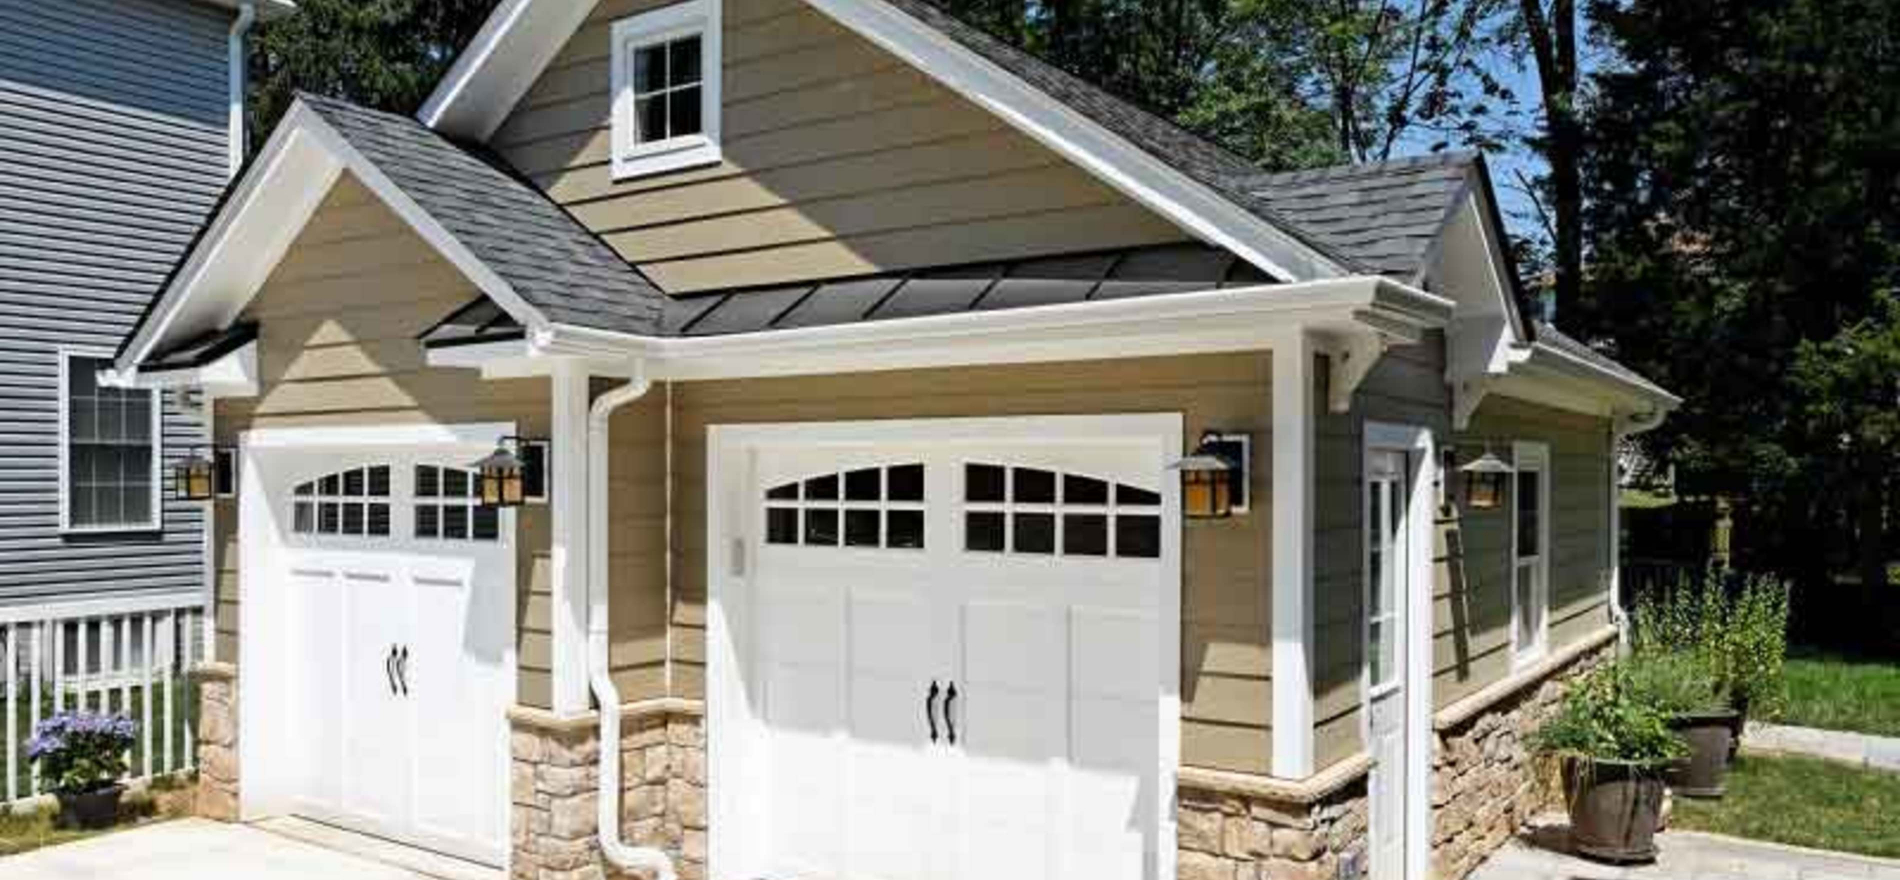 NEC-Design-Build-Home-additions-photos-_(5) Garage Additions Photos